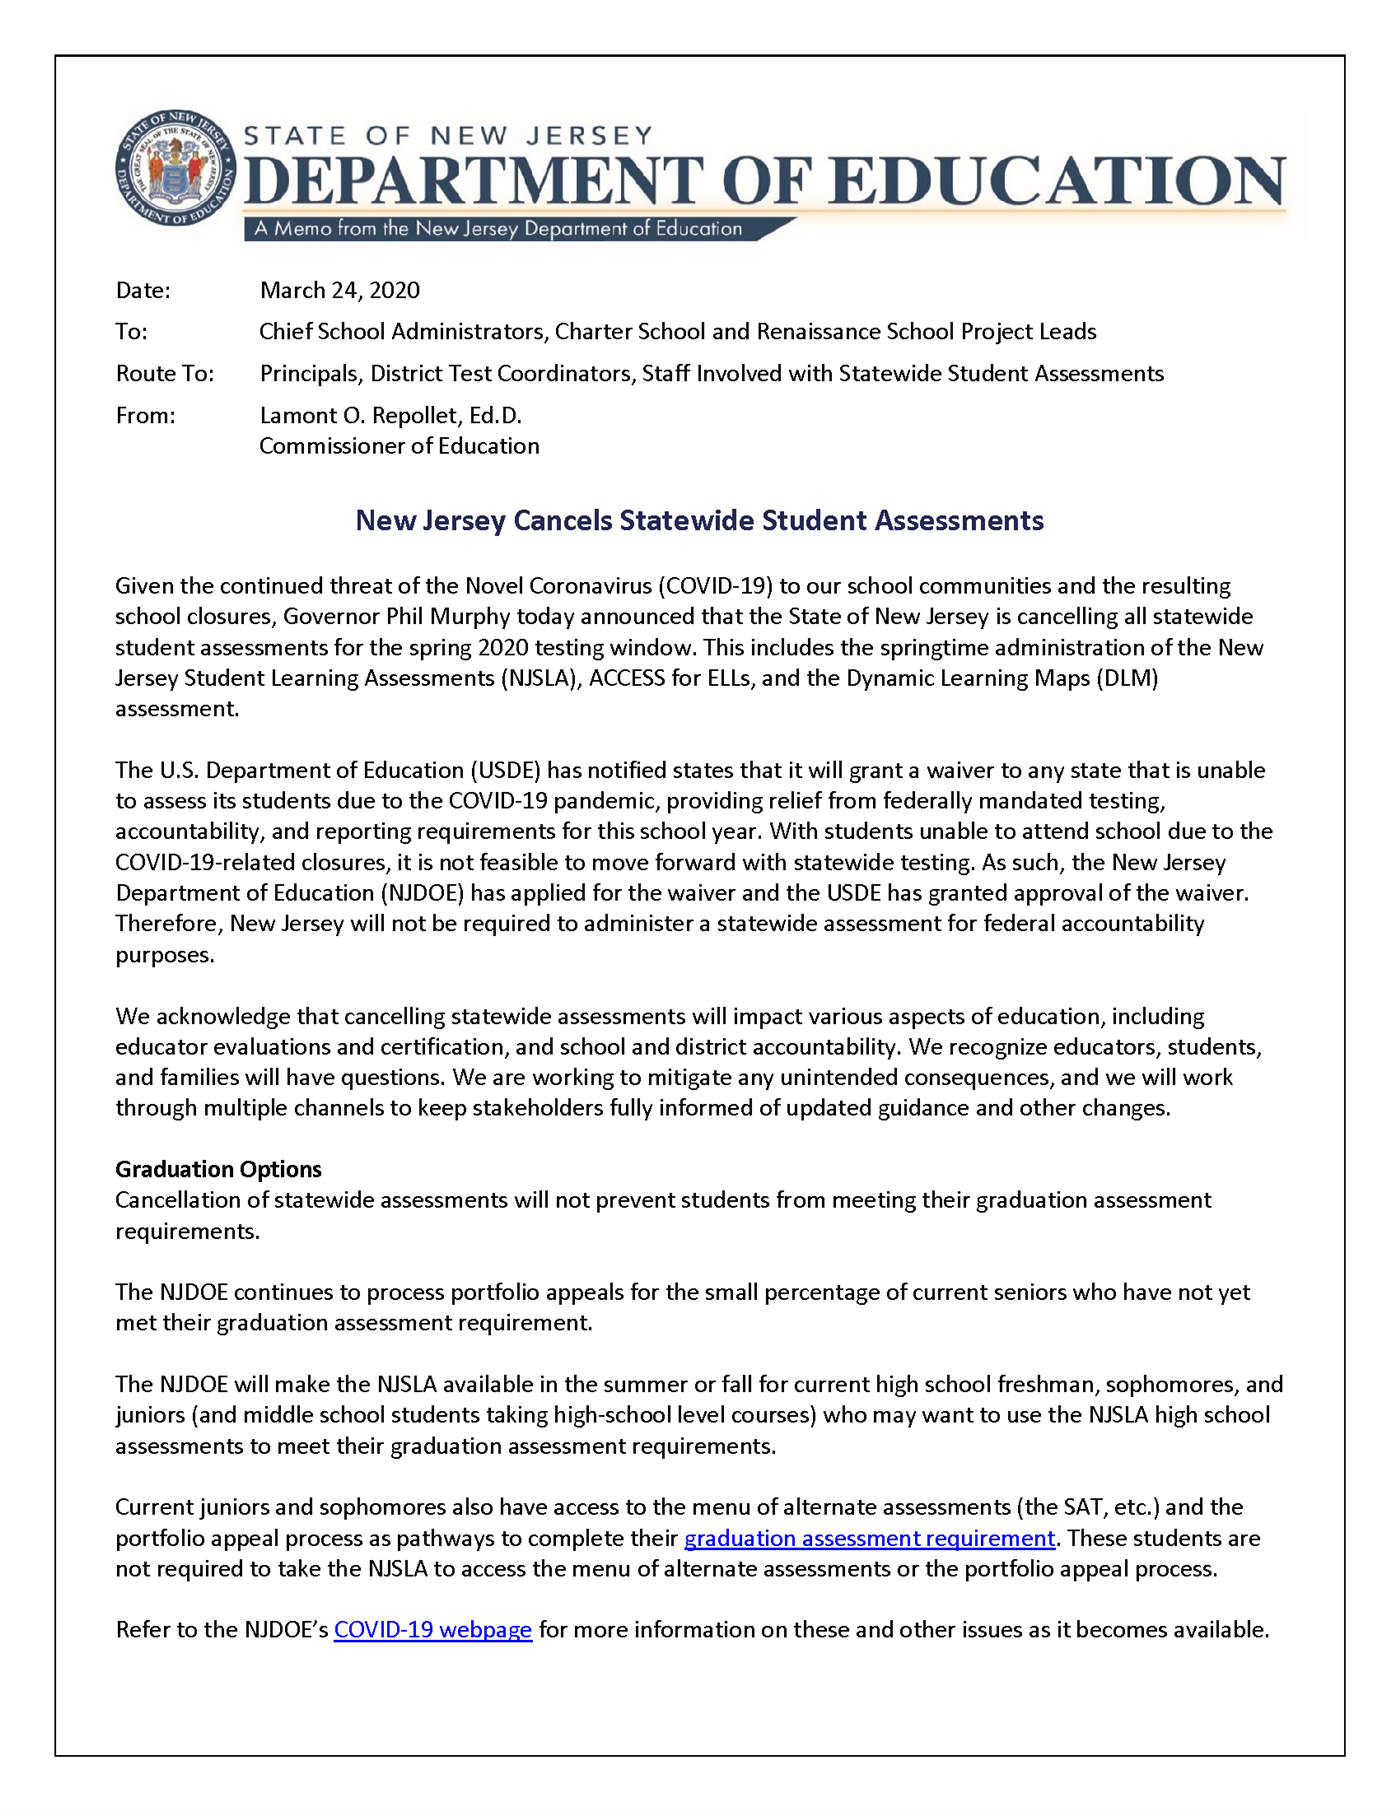 NJDOE Assessment Note Regarding Testing